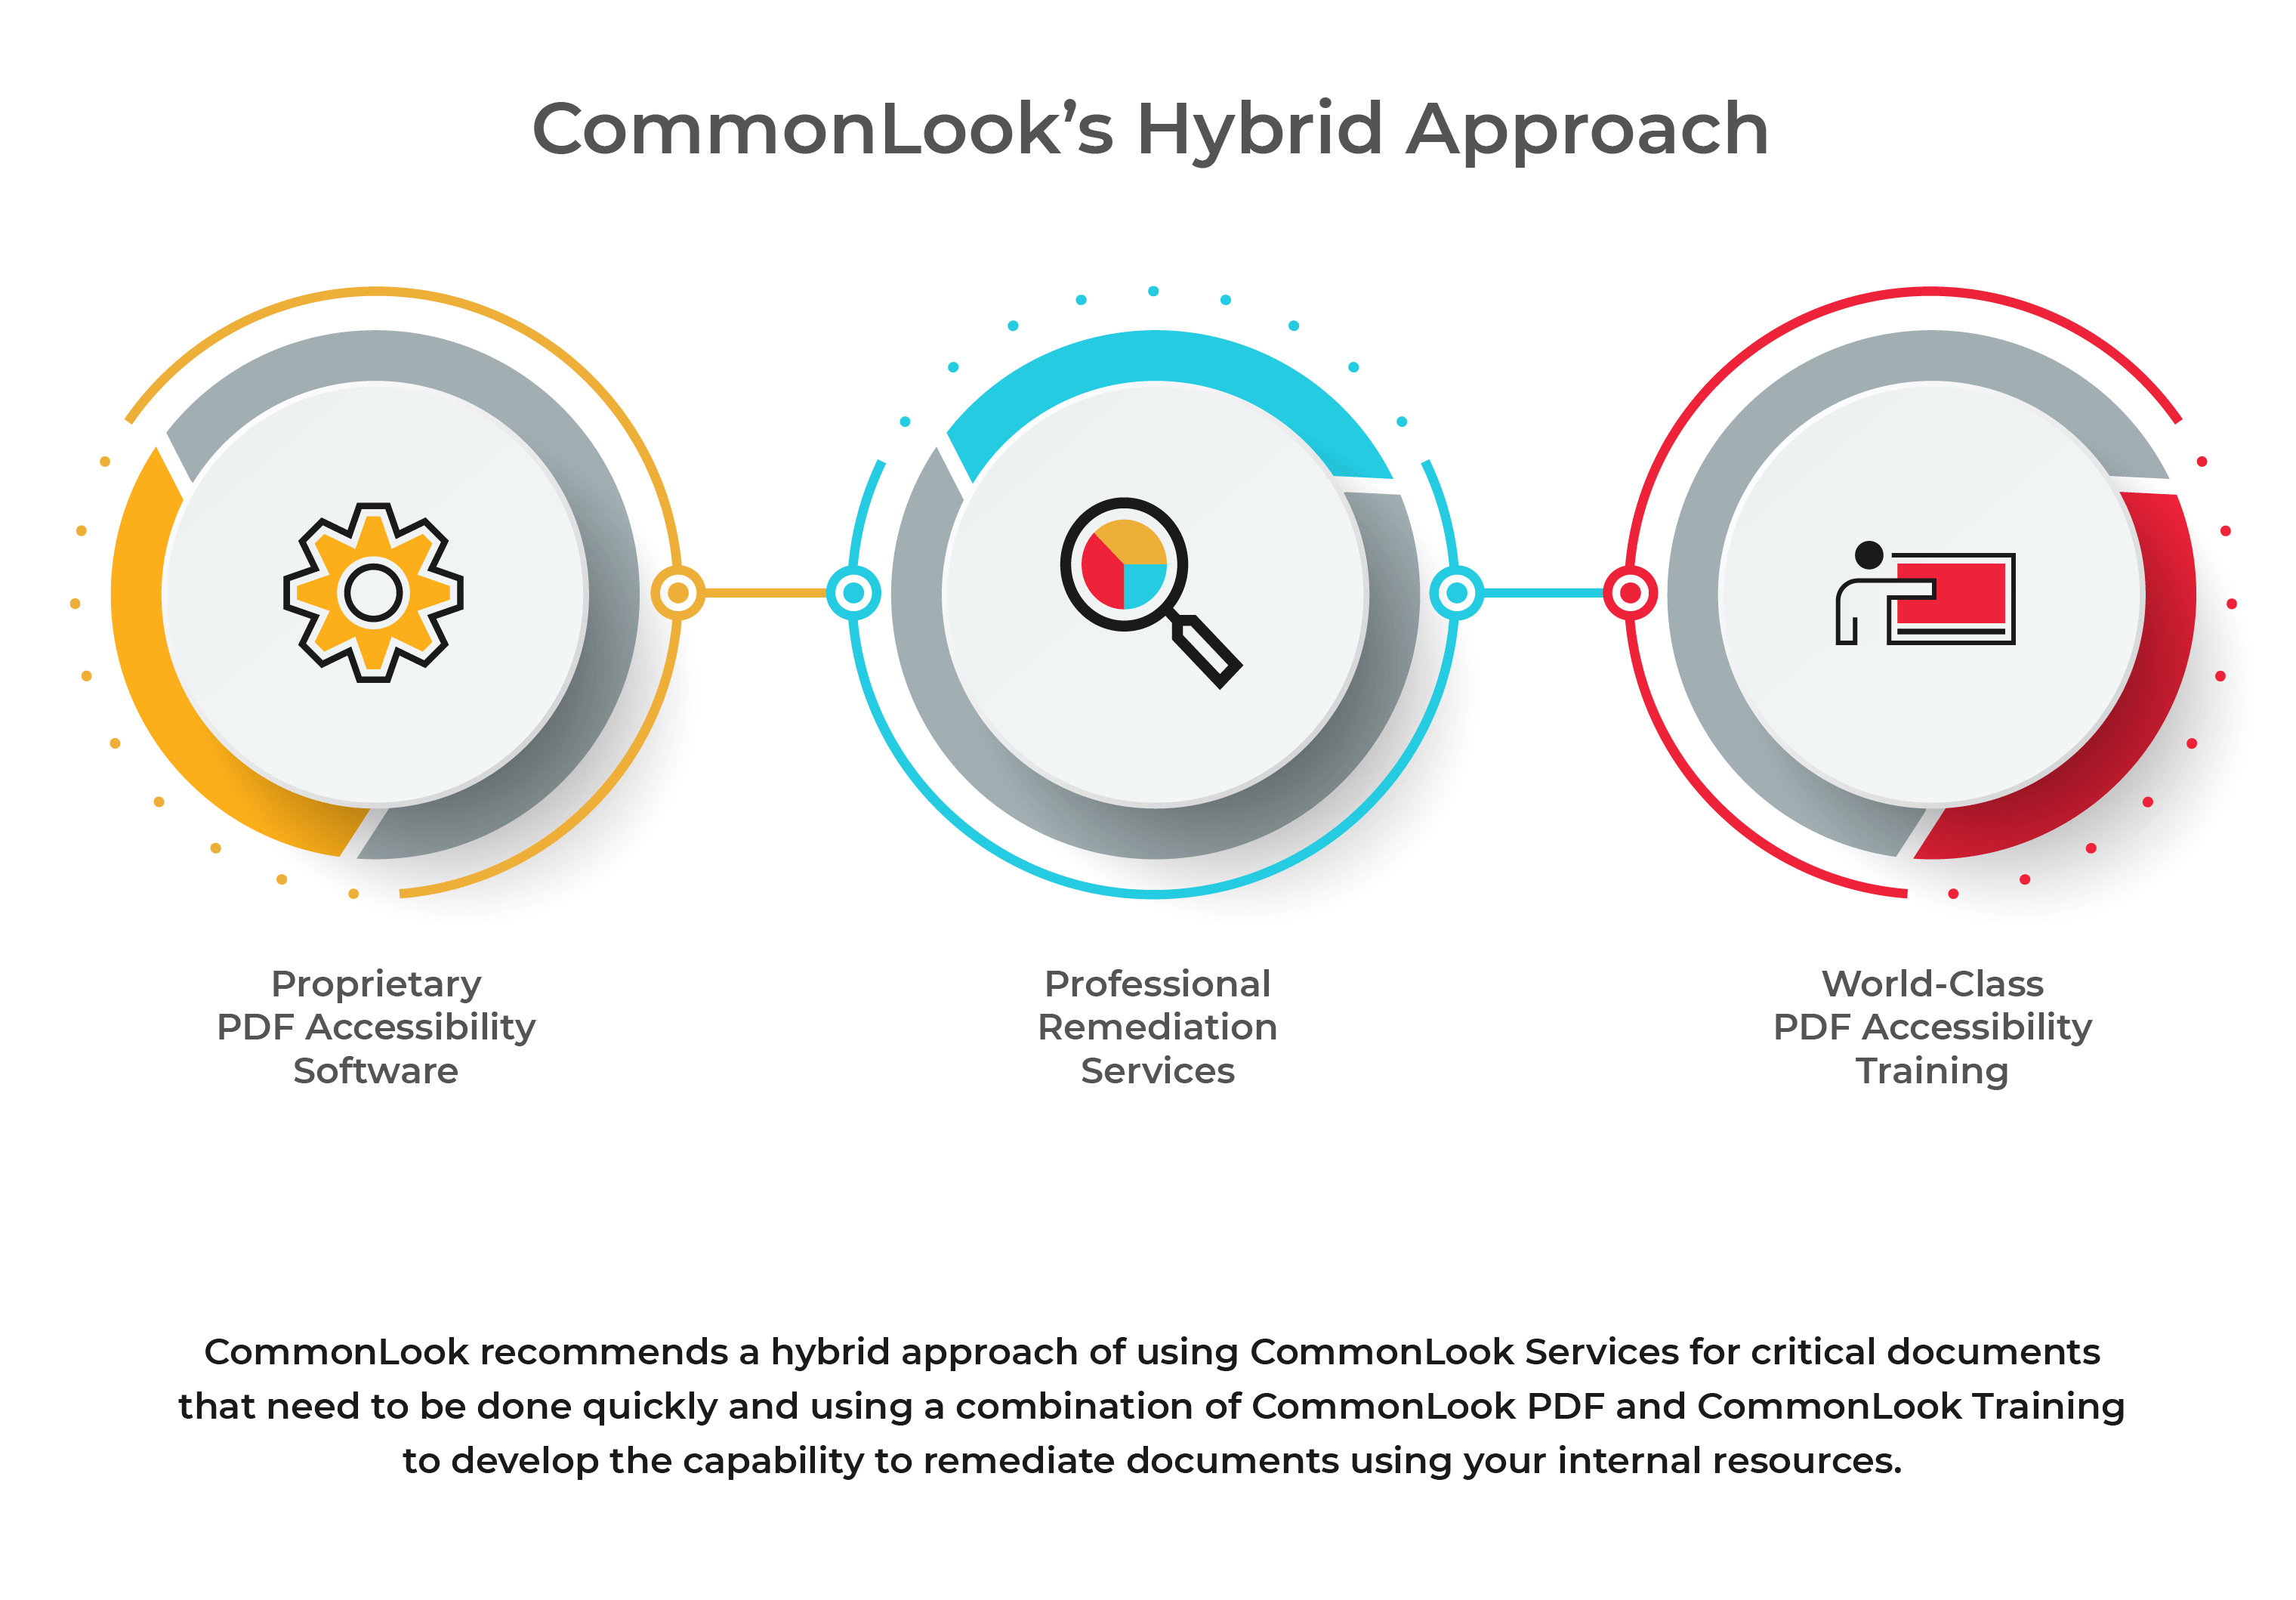 CommonLook Hybrid approach: proprietary software, professional remediation services and world-class pdf accessibility training